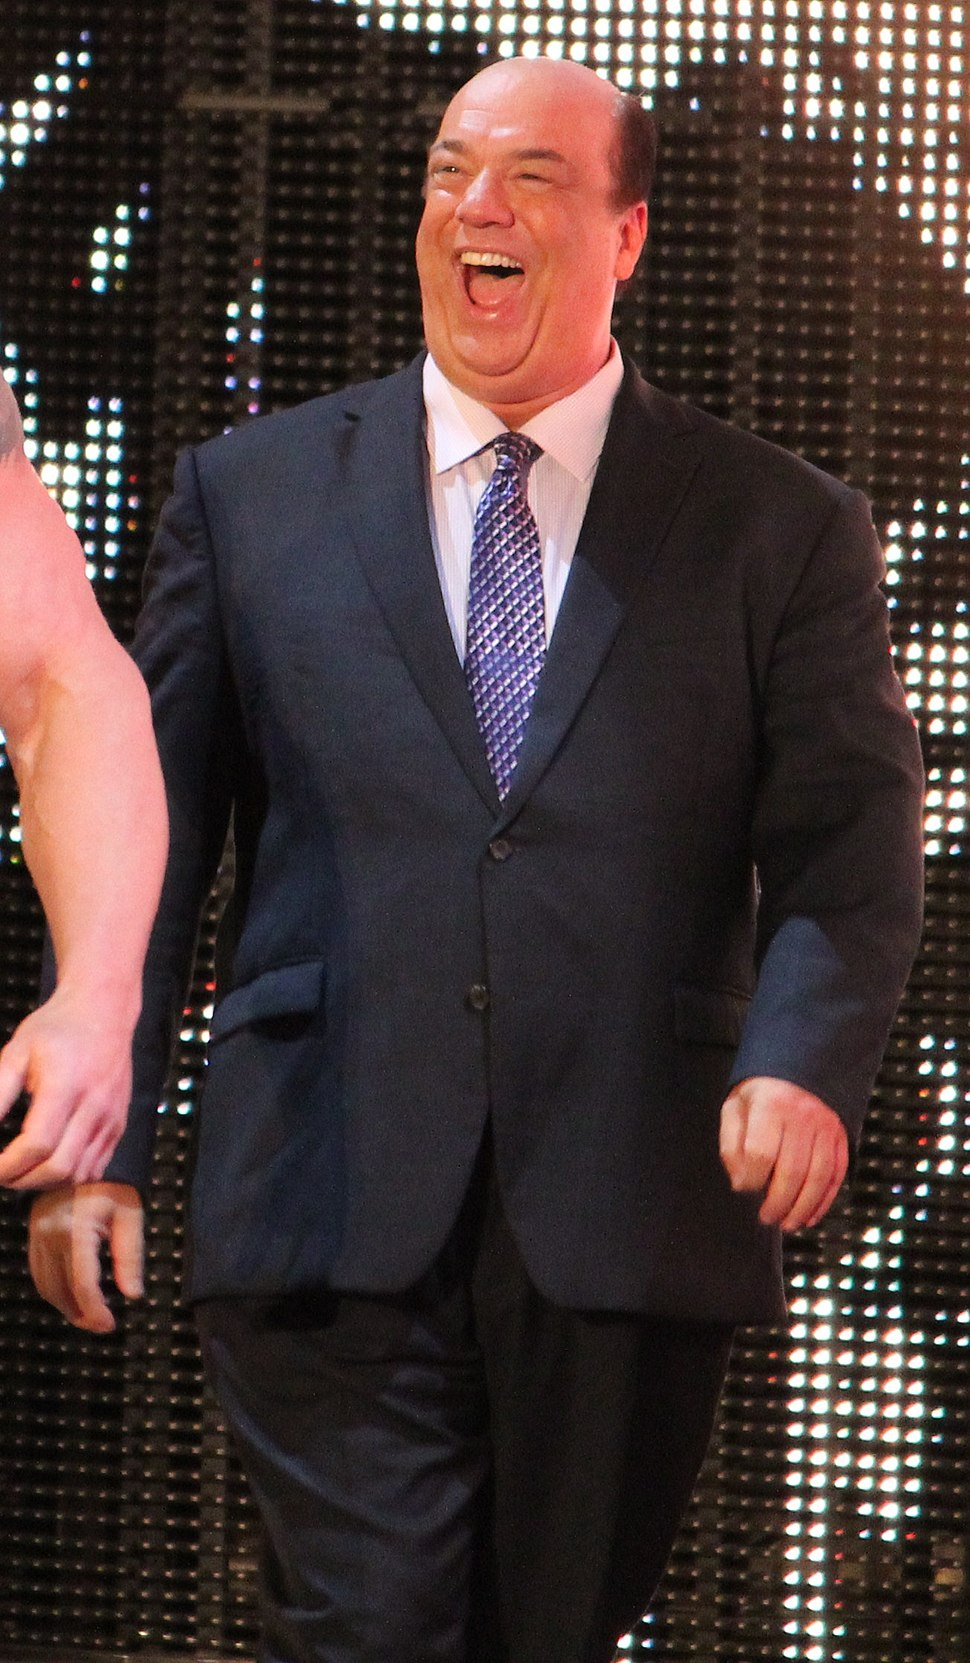 Paul Heyman is the happiest man in the world